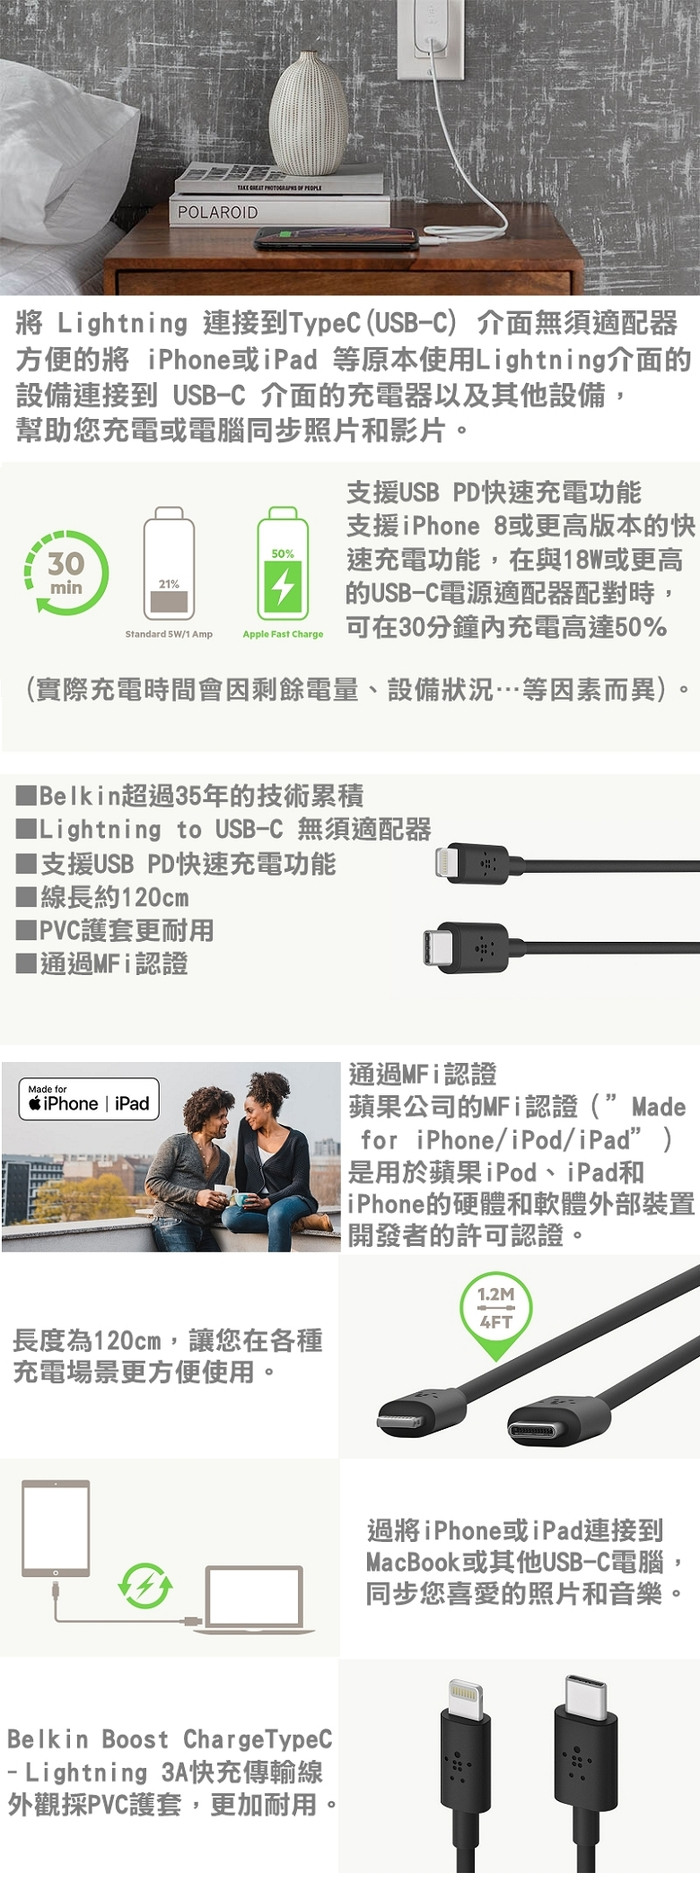 Belkin |Boost Charge TypeC to Lightning 傳輸線